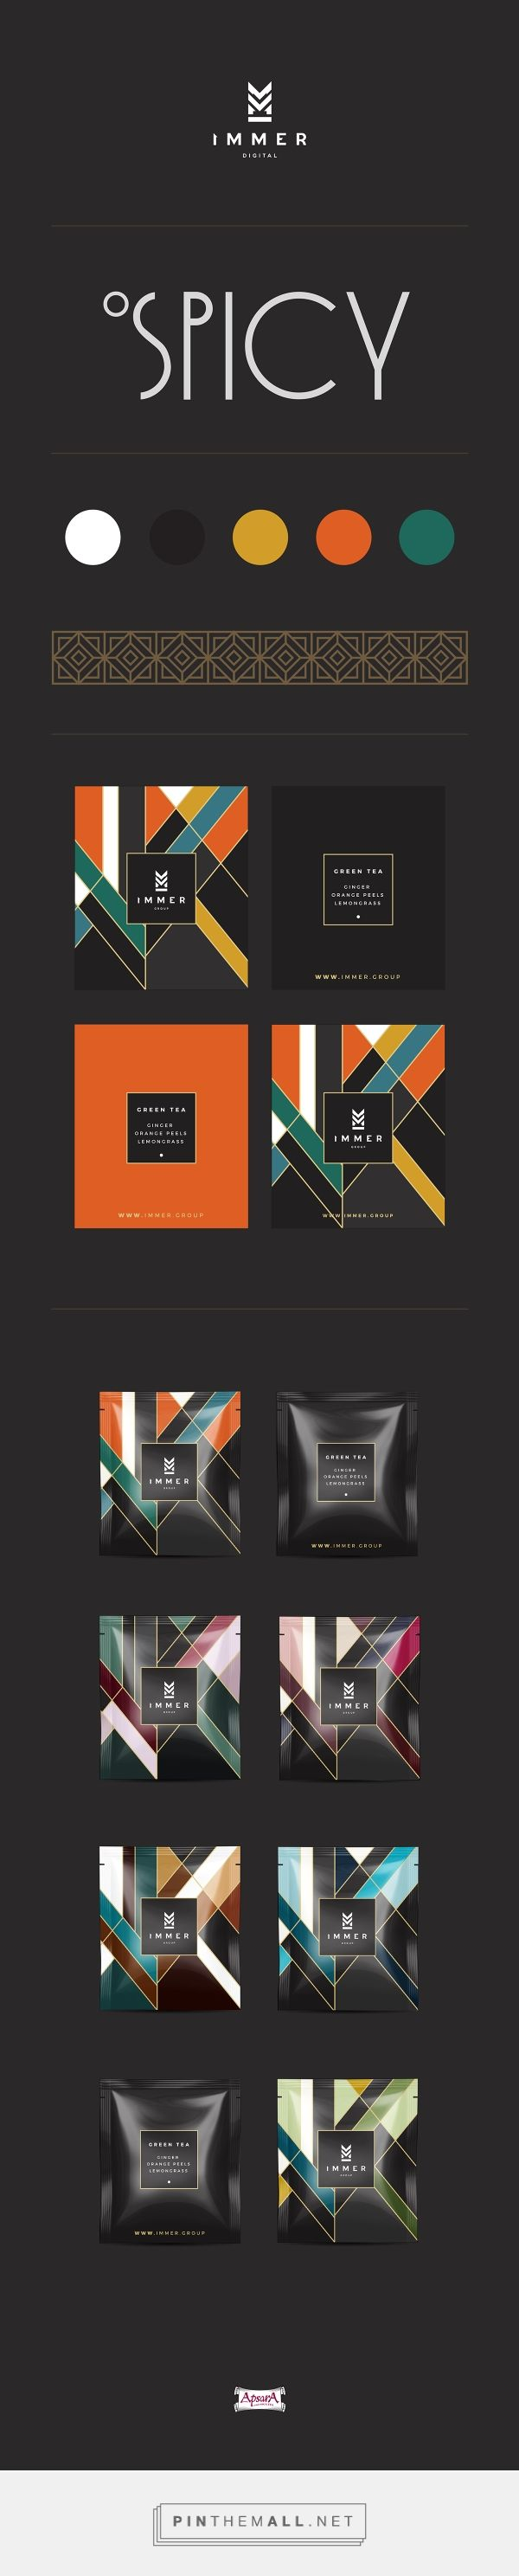 Immer Tea Packaging by Gundega Bruvere | Fivestar Branding Agency – Design and Branding Agency & Curated Inspiration Gallery #packaging #packagingdesign #design #designideas #designinspiration